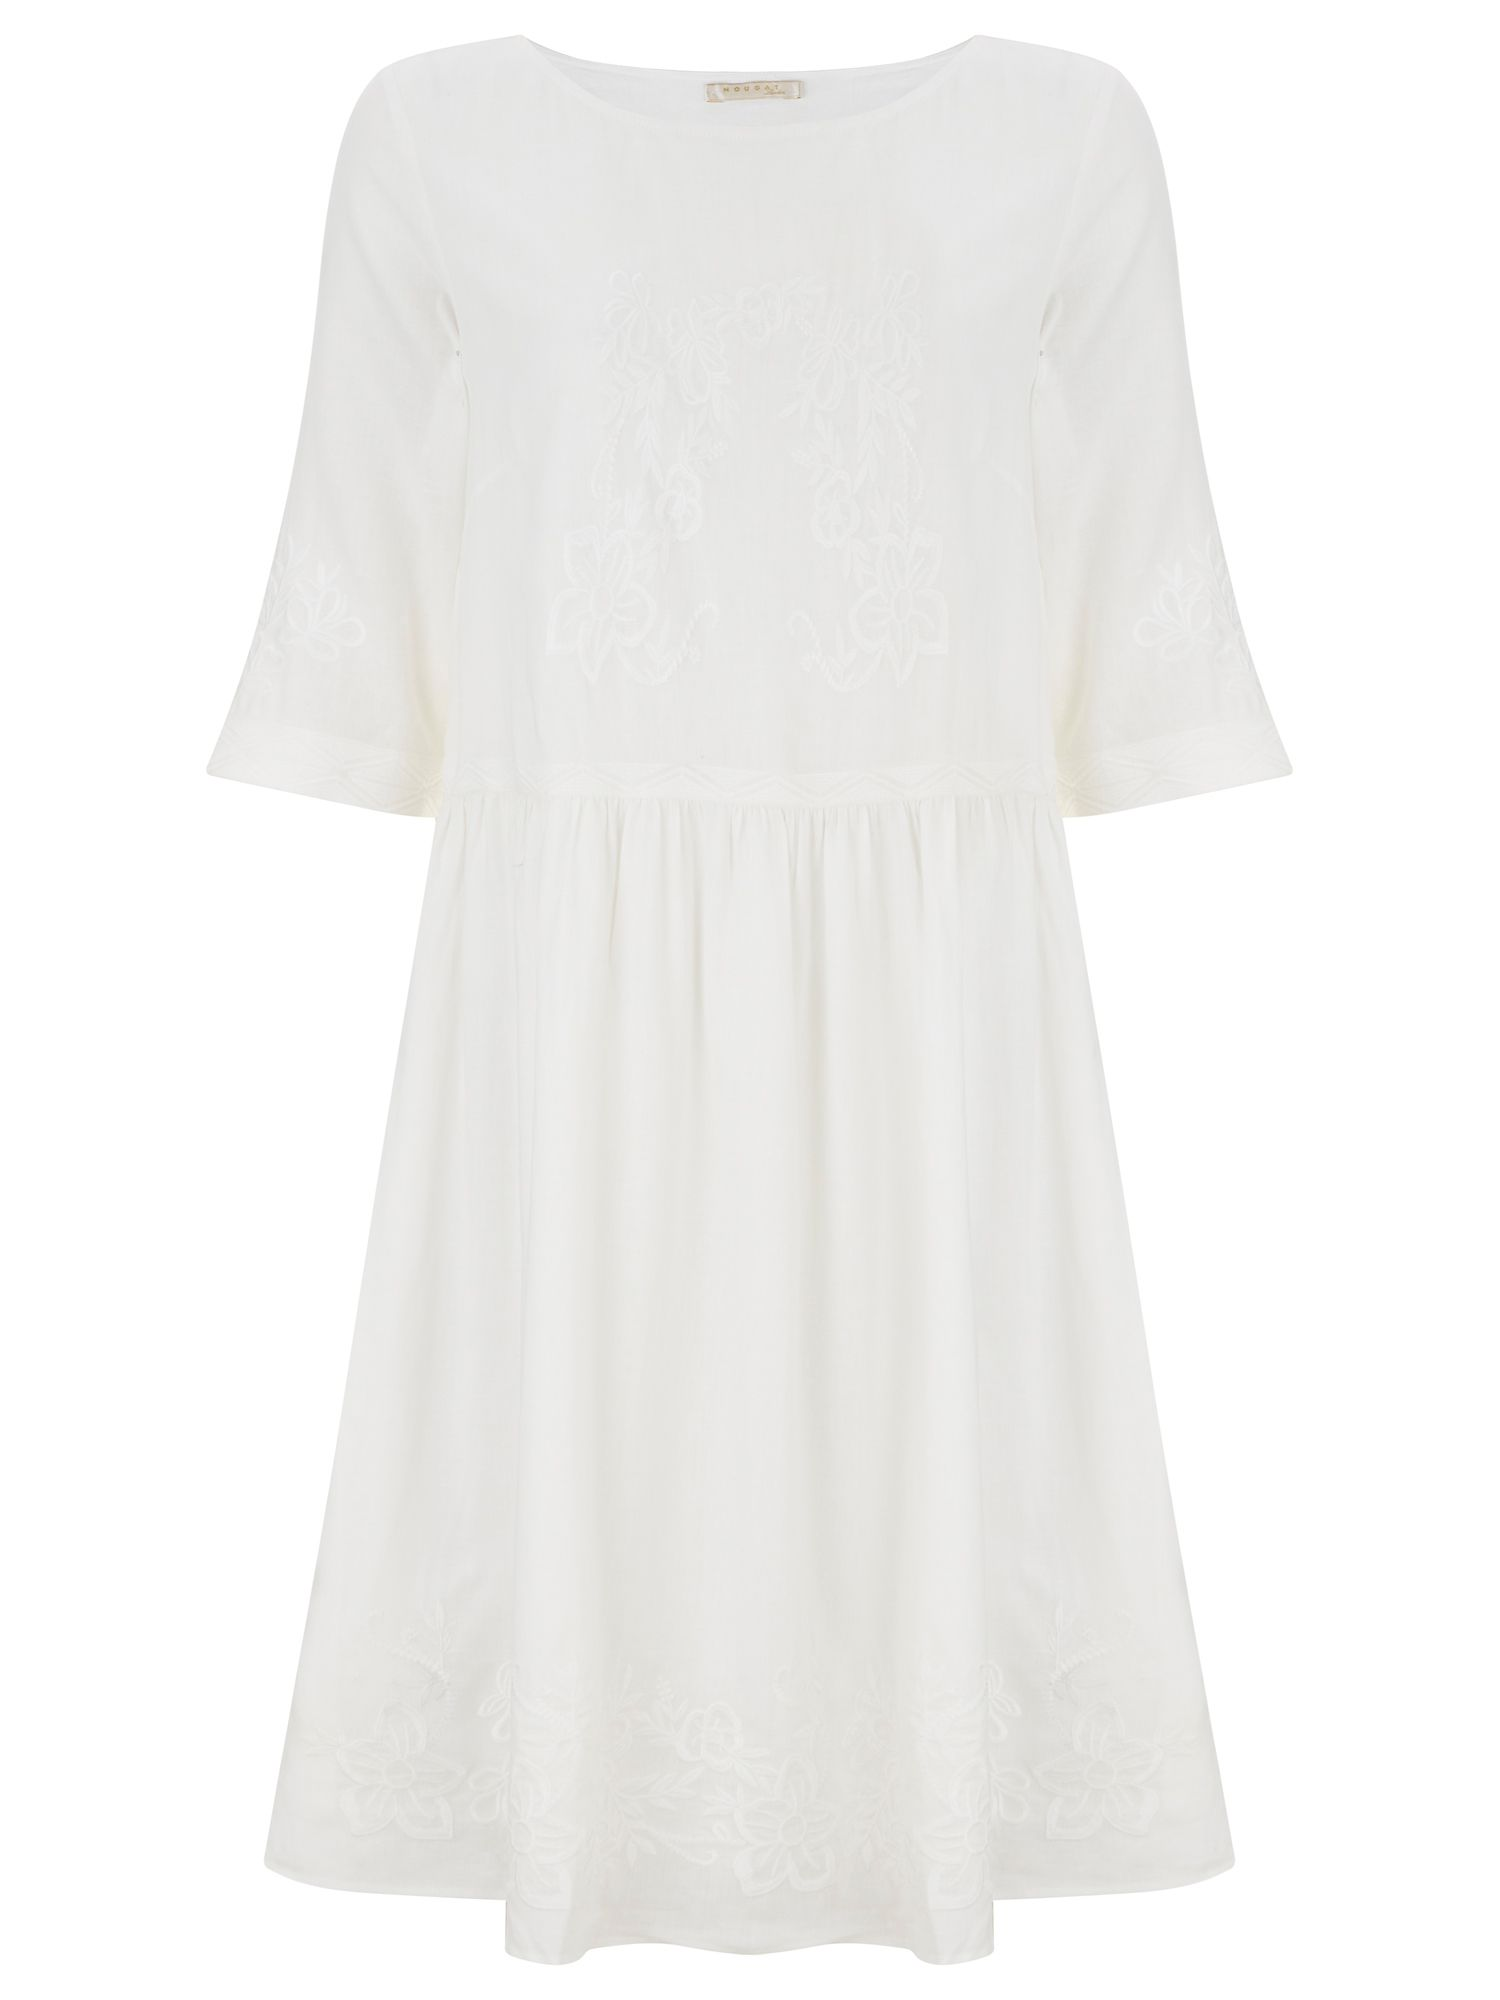 Nougat London Poppy Linen Dress, Cream